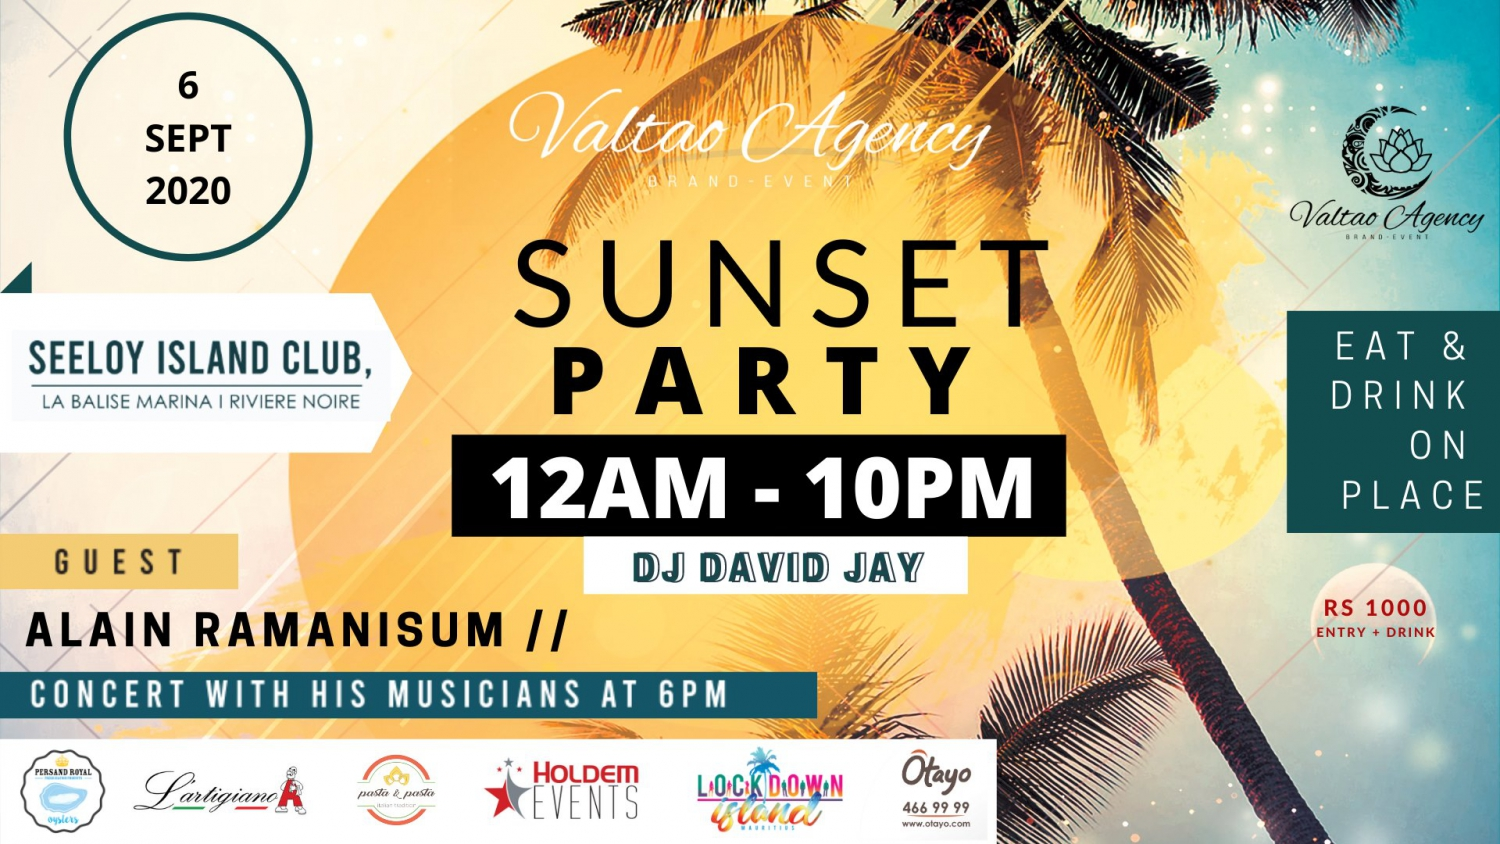 SUNSET PARTY at  Seeloy Island Club